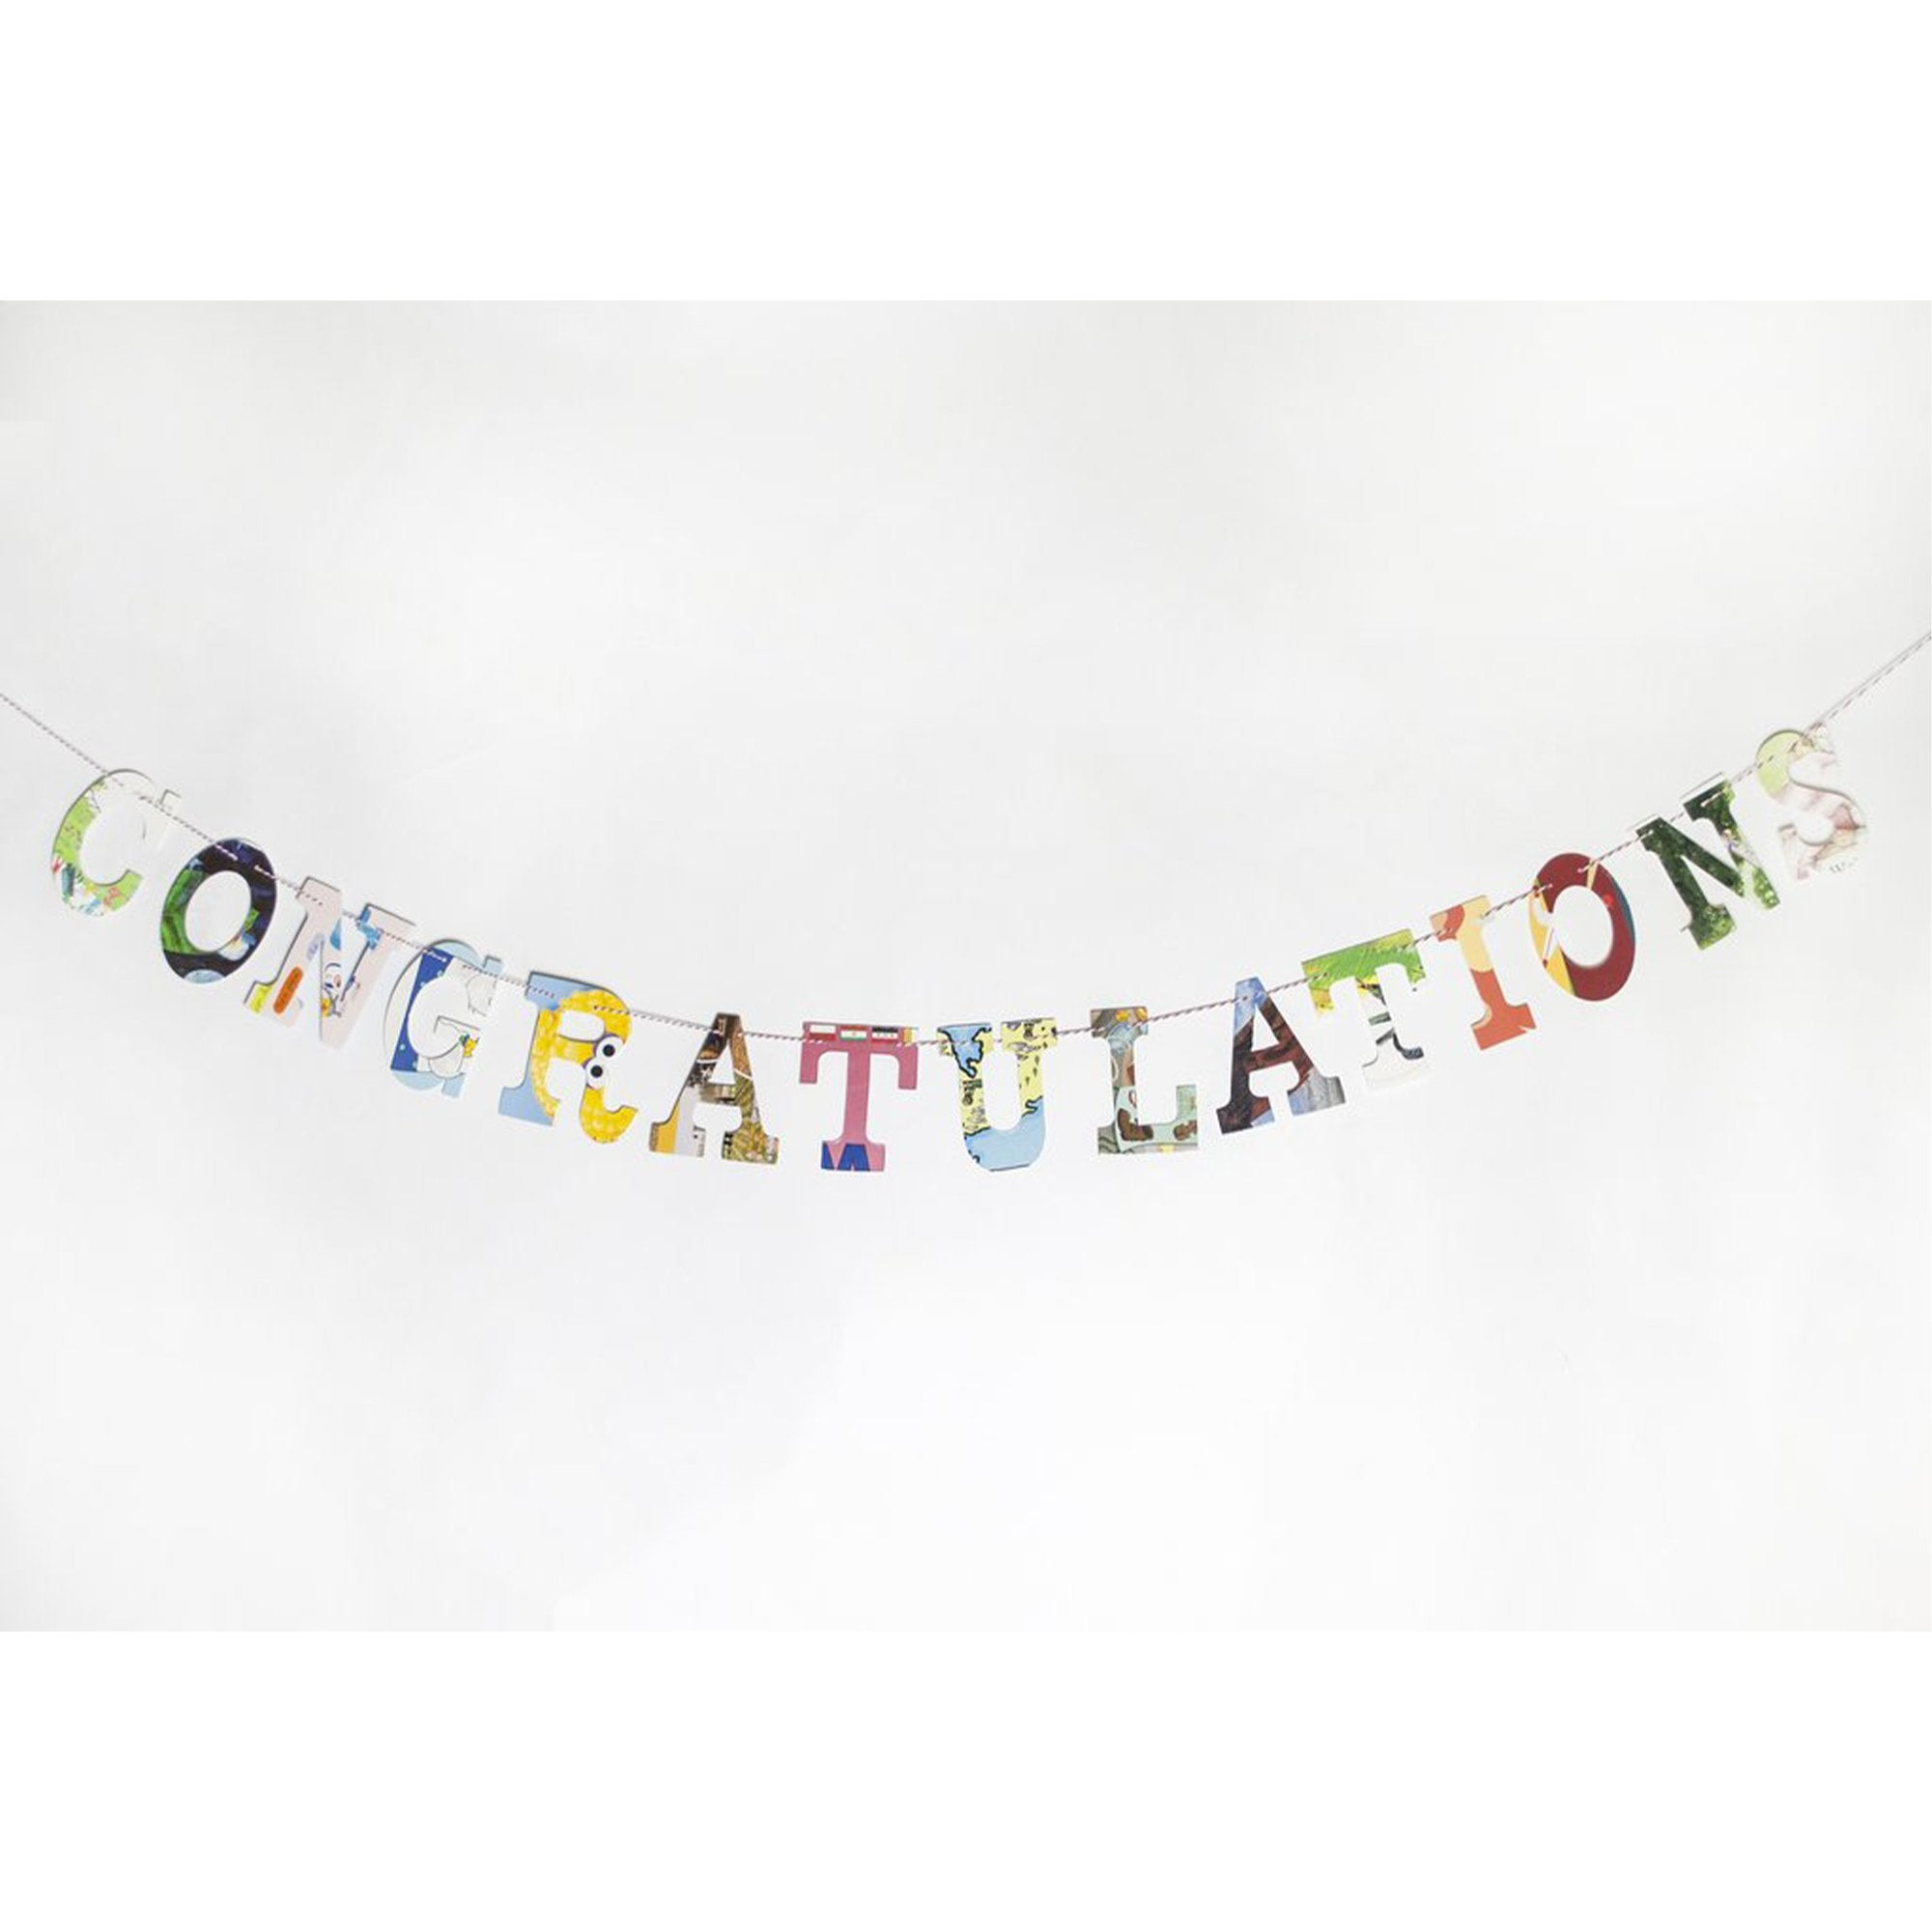 """Congratulations"" garland, multi colored collage style, hanging on white wall"